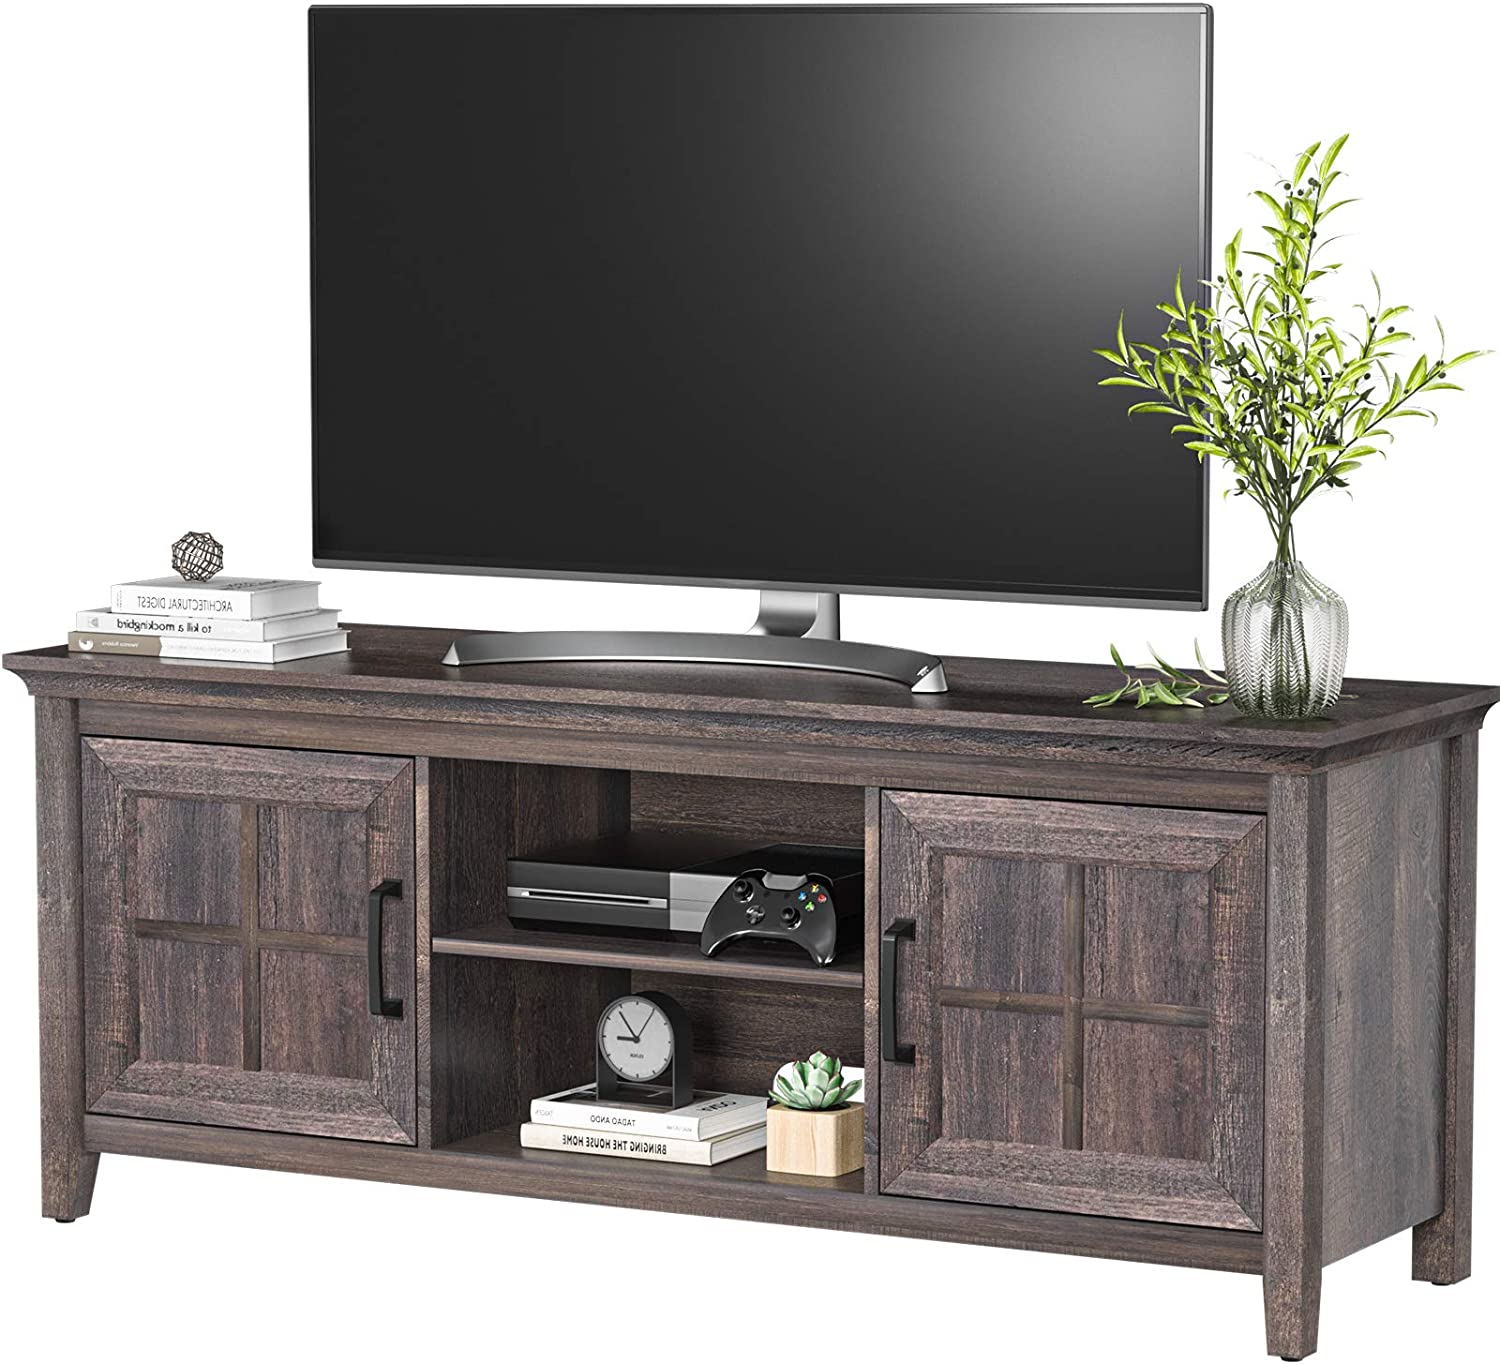 AM alphamount Wood TV Stand for TVs up to 65inch Rustic Media Console Table with Adjustable Storage Cabinet Entertainment Center for Living Room Farmhouse TV Table- APRTS04B